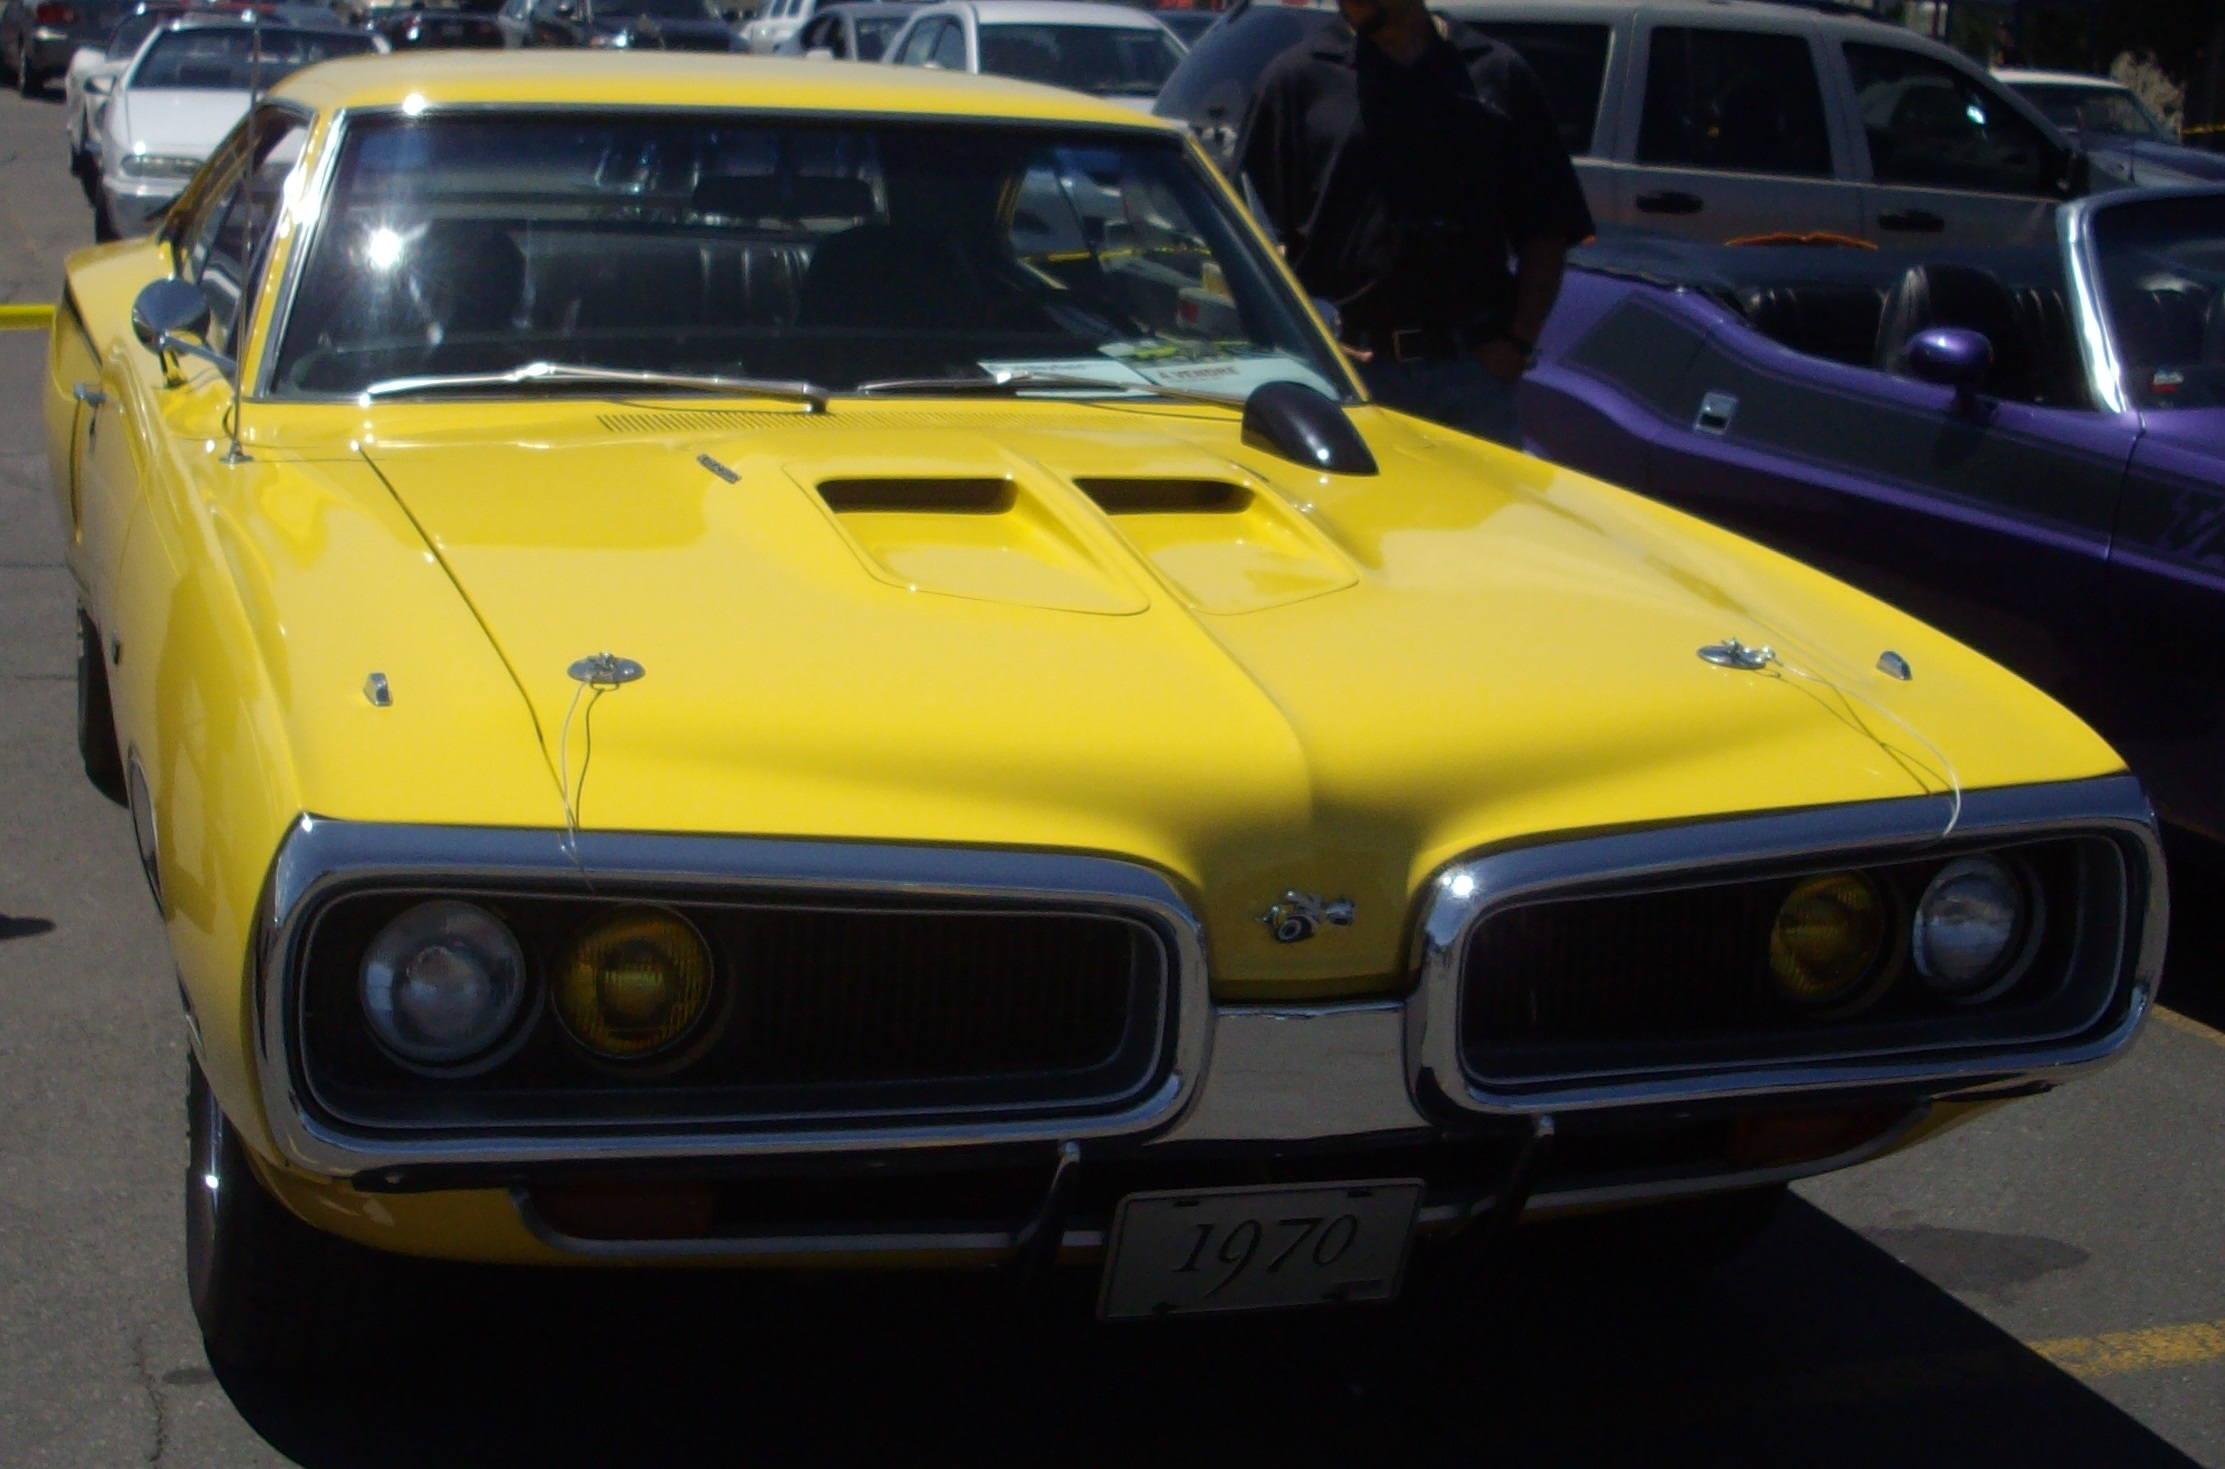 dodge charger 1970 quebec with File '70 Dodge Super Bee  Rassemblement Mopar Valleyfield '12 on File '70 Dodge Super Bee  Rassemblement Mopar Valleyfield '12 besides Ford Torino Gt 1970 additionally Sale as well 10 Amazing Muscle Car Barn Finds That Youd Love To Restore additionally Dodge Charger Saison 2013.